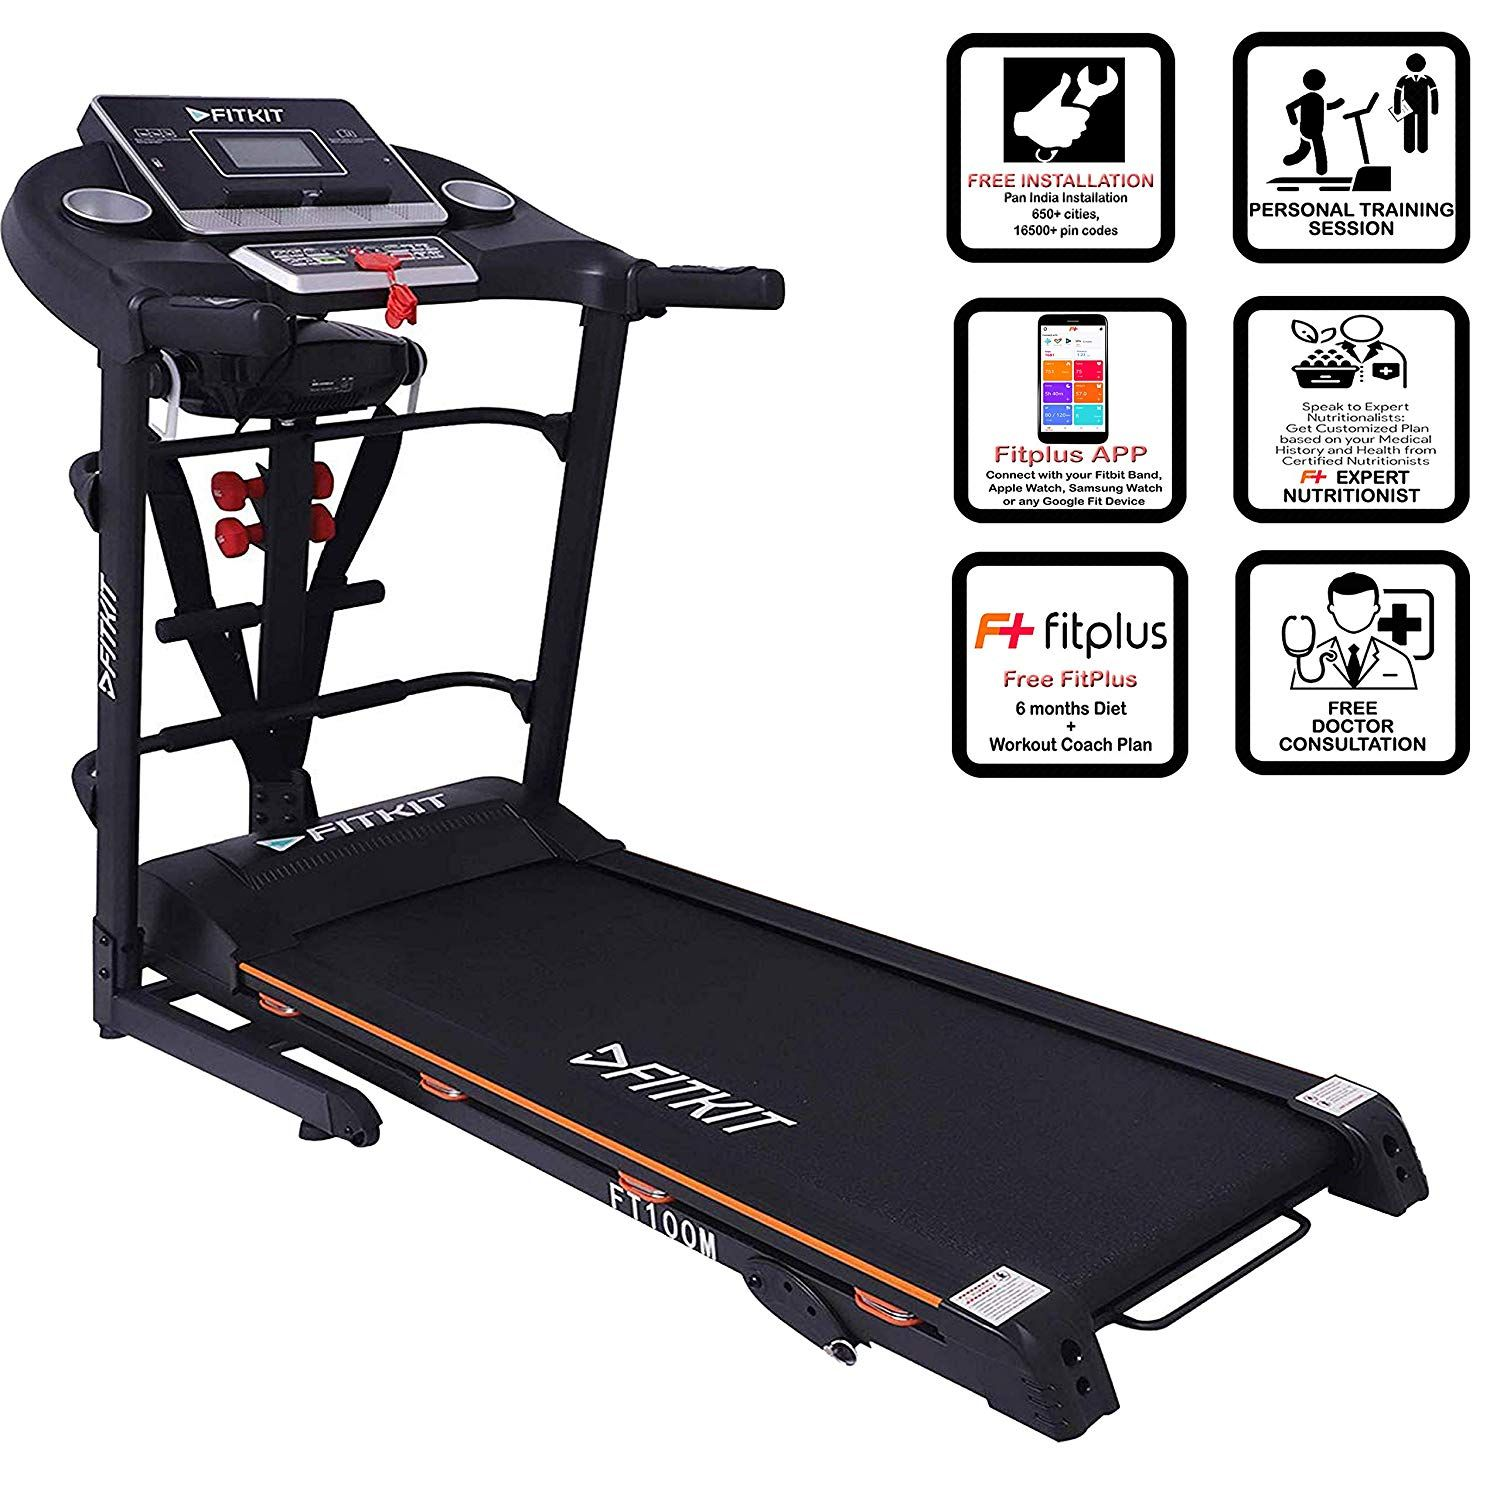 Treadmill features LCD display time, speed, calories